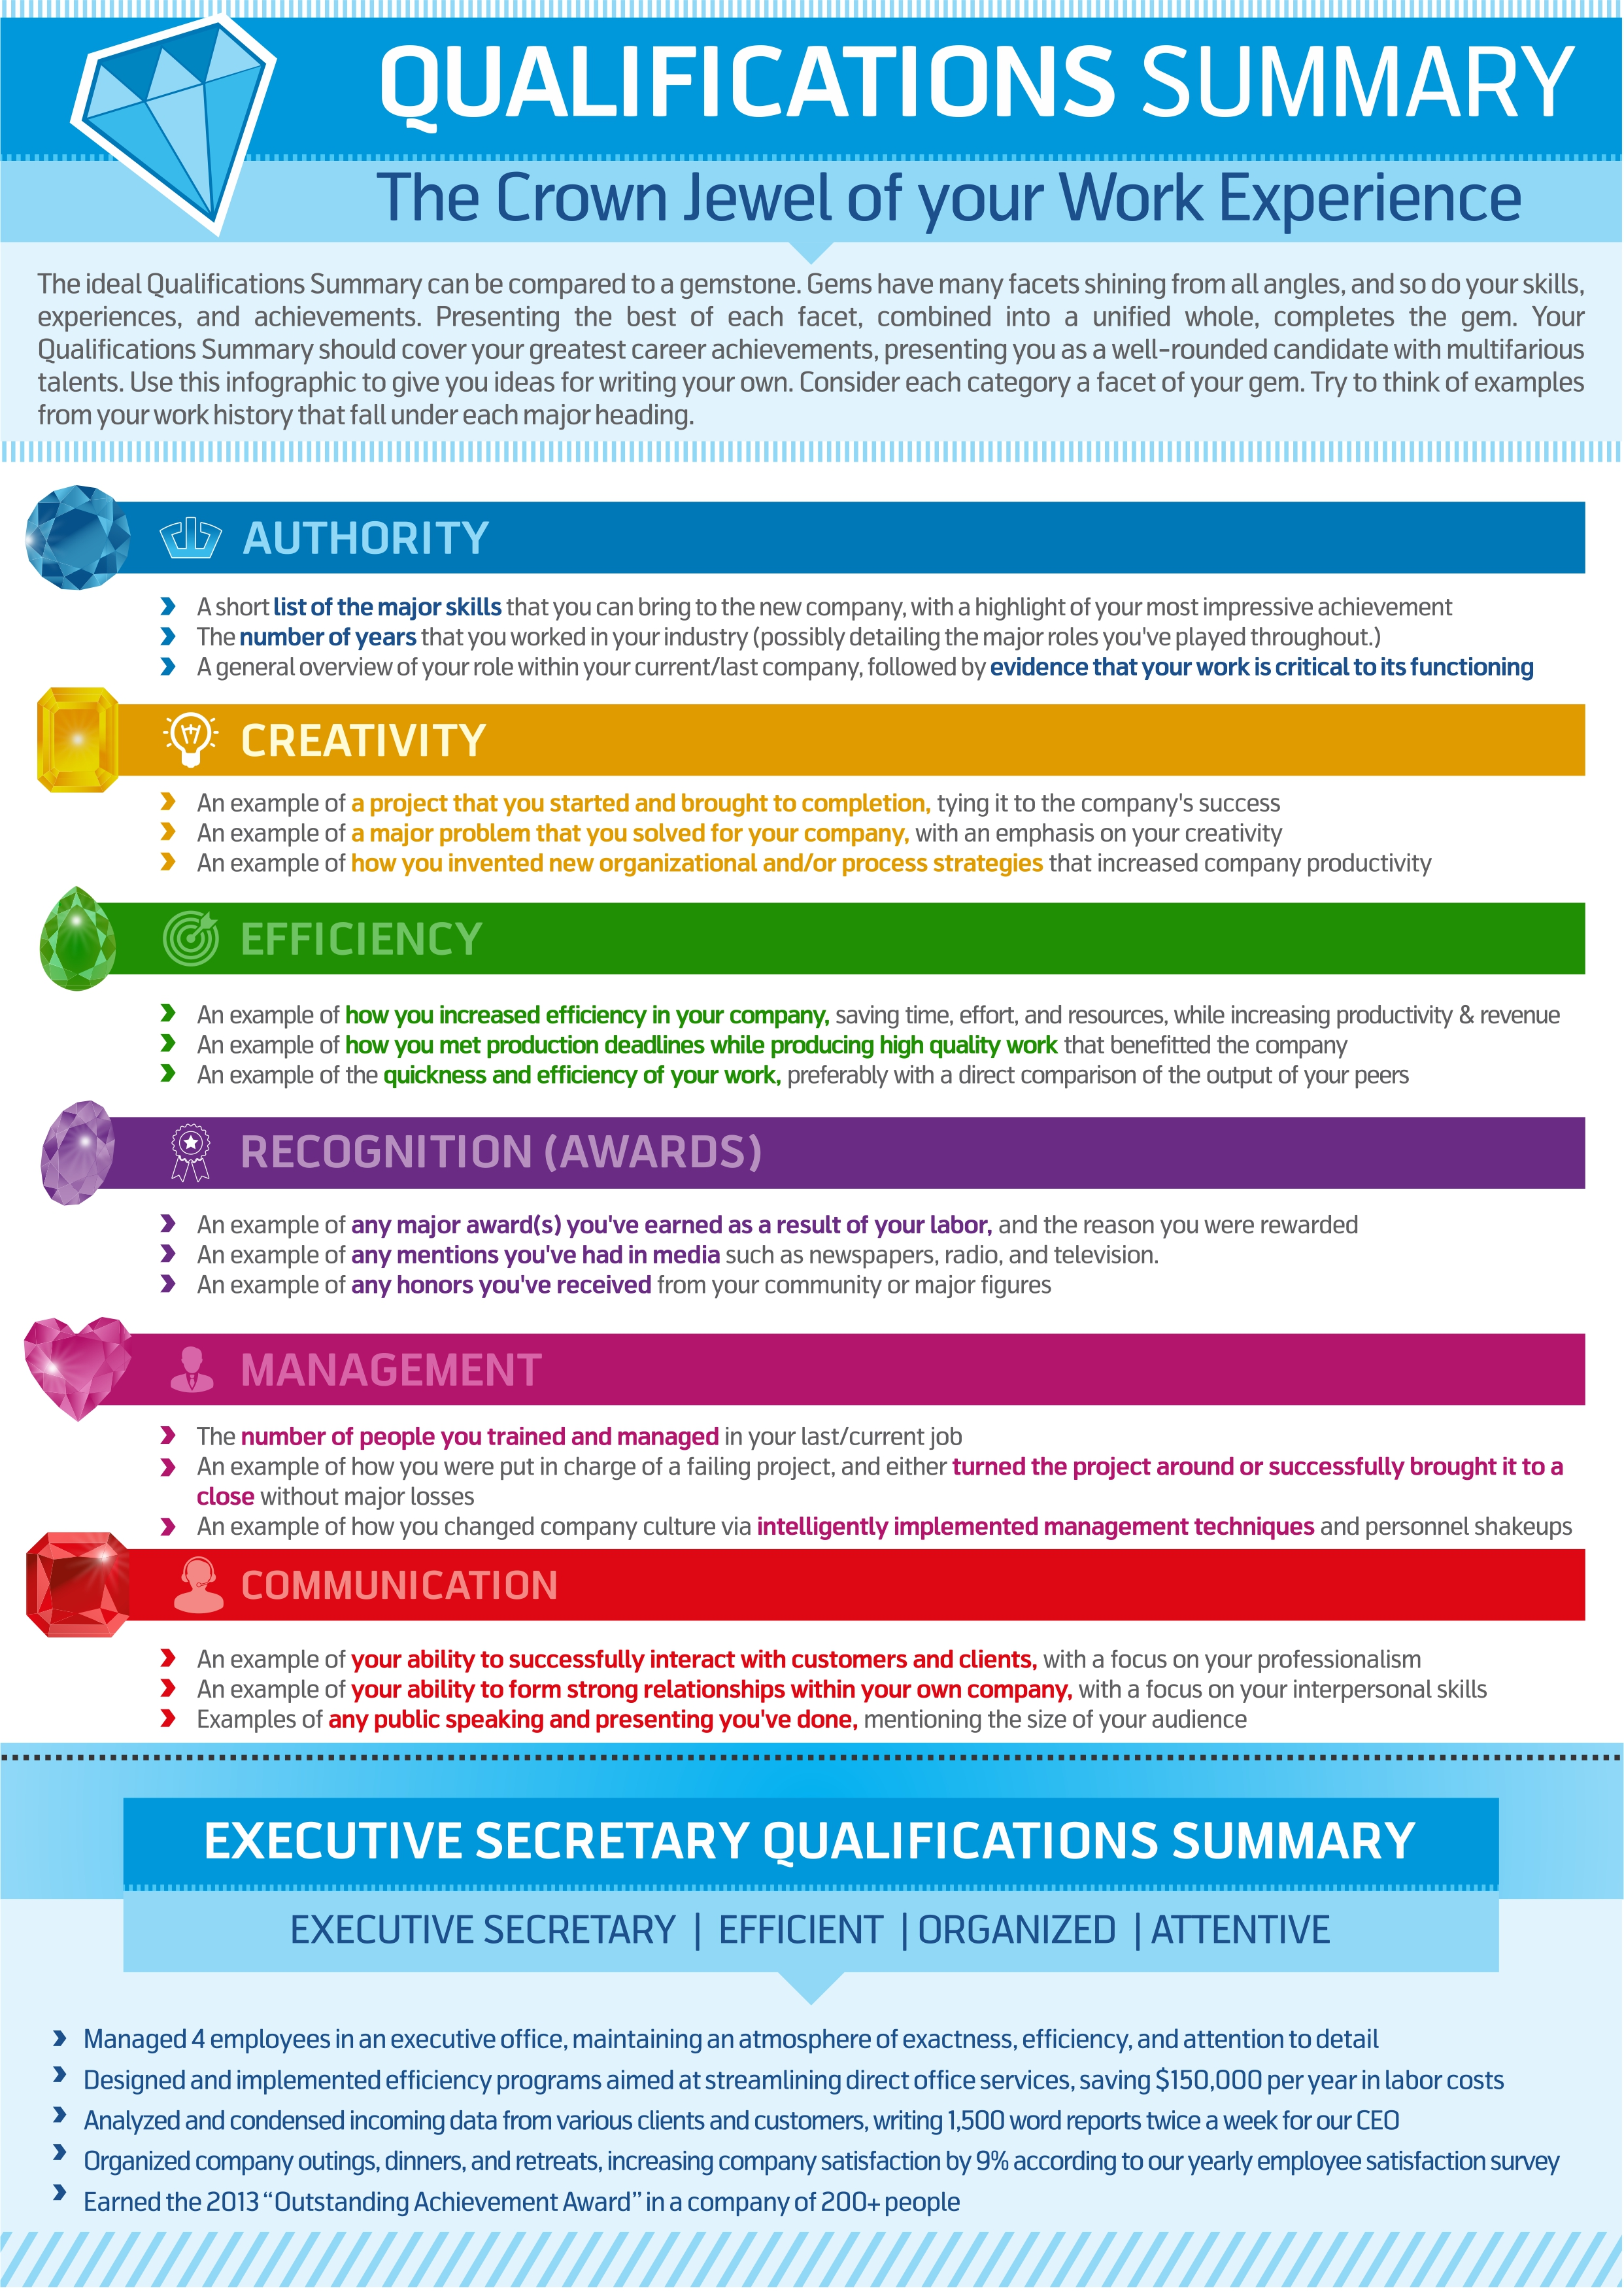 resume genius scholarship summary resume genius resume genius qualifications summary infographic